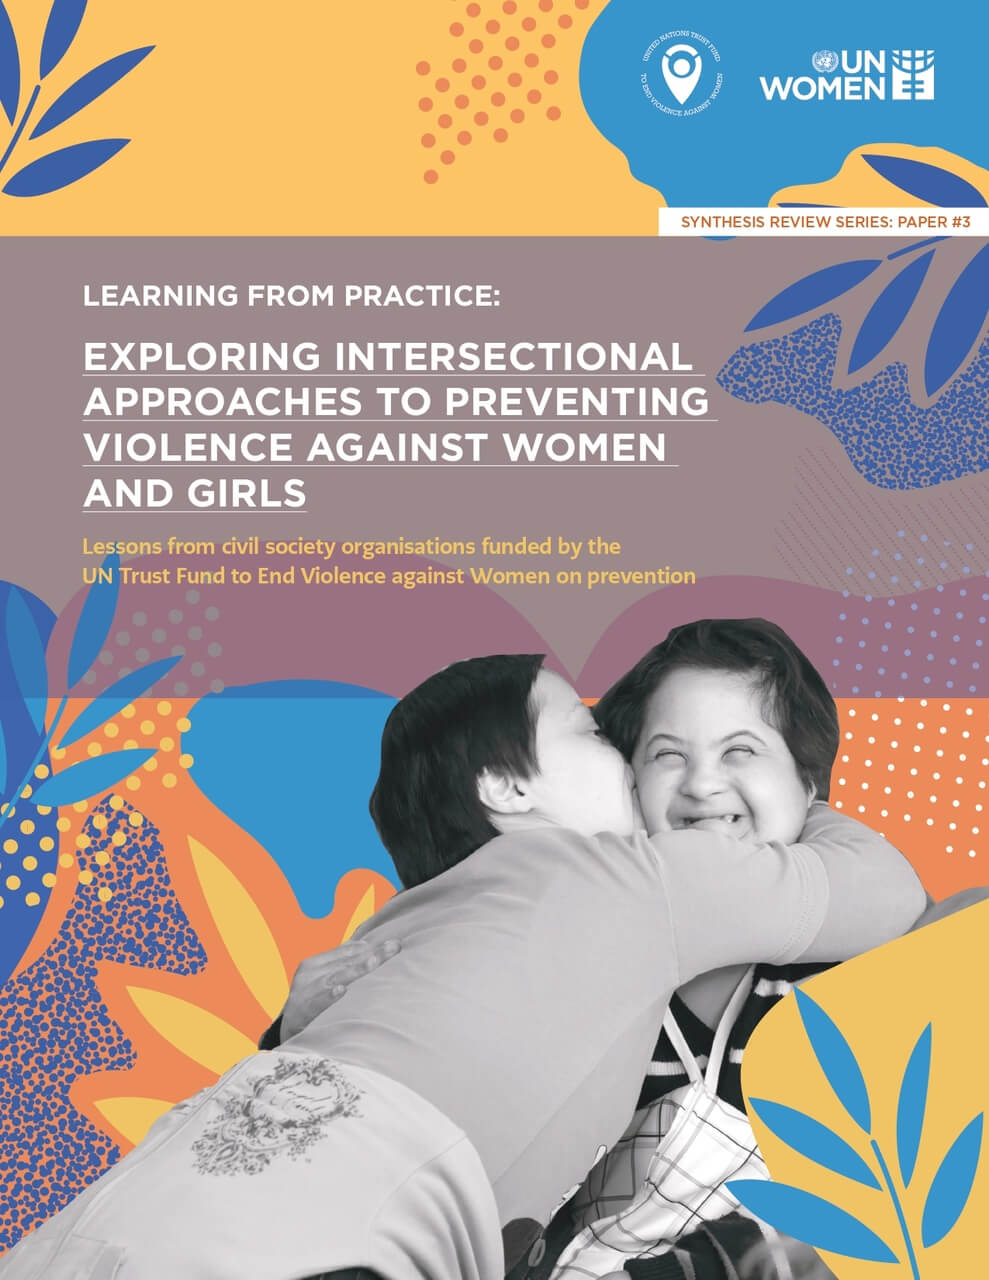 Cover image intersectional approaches prevention brief